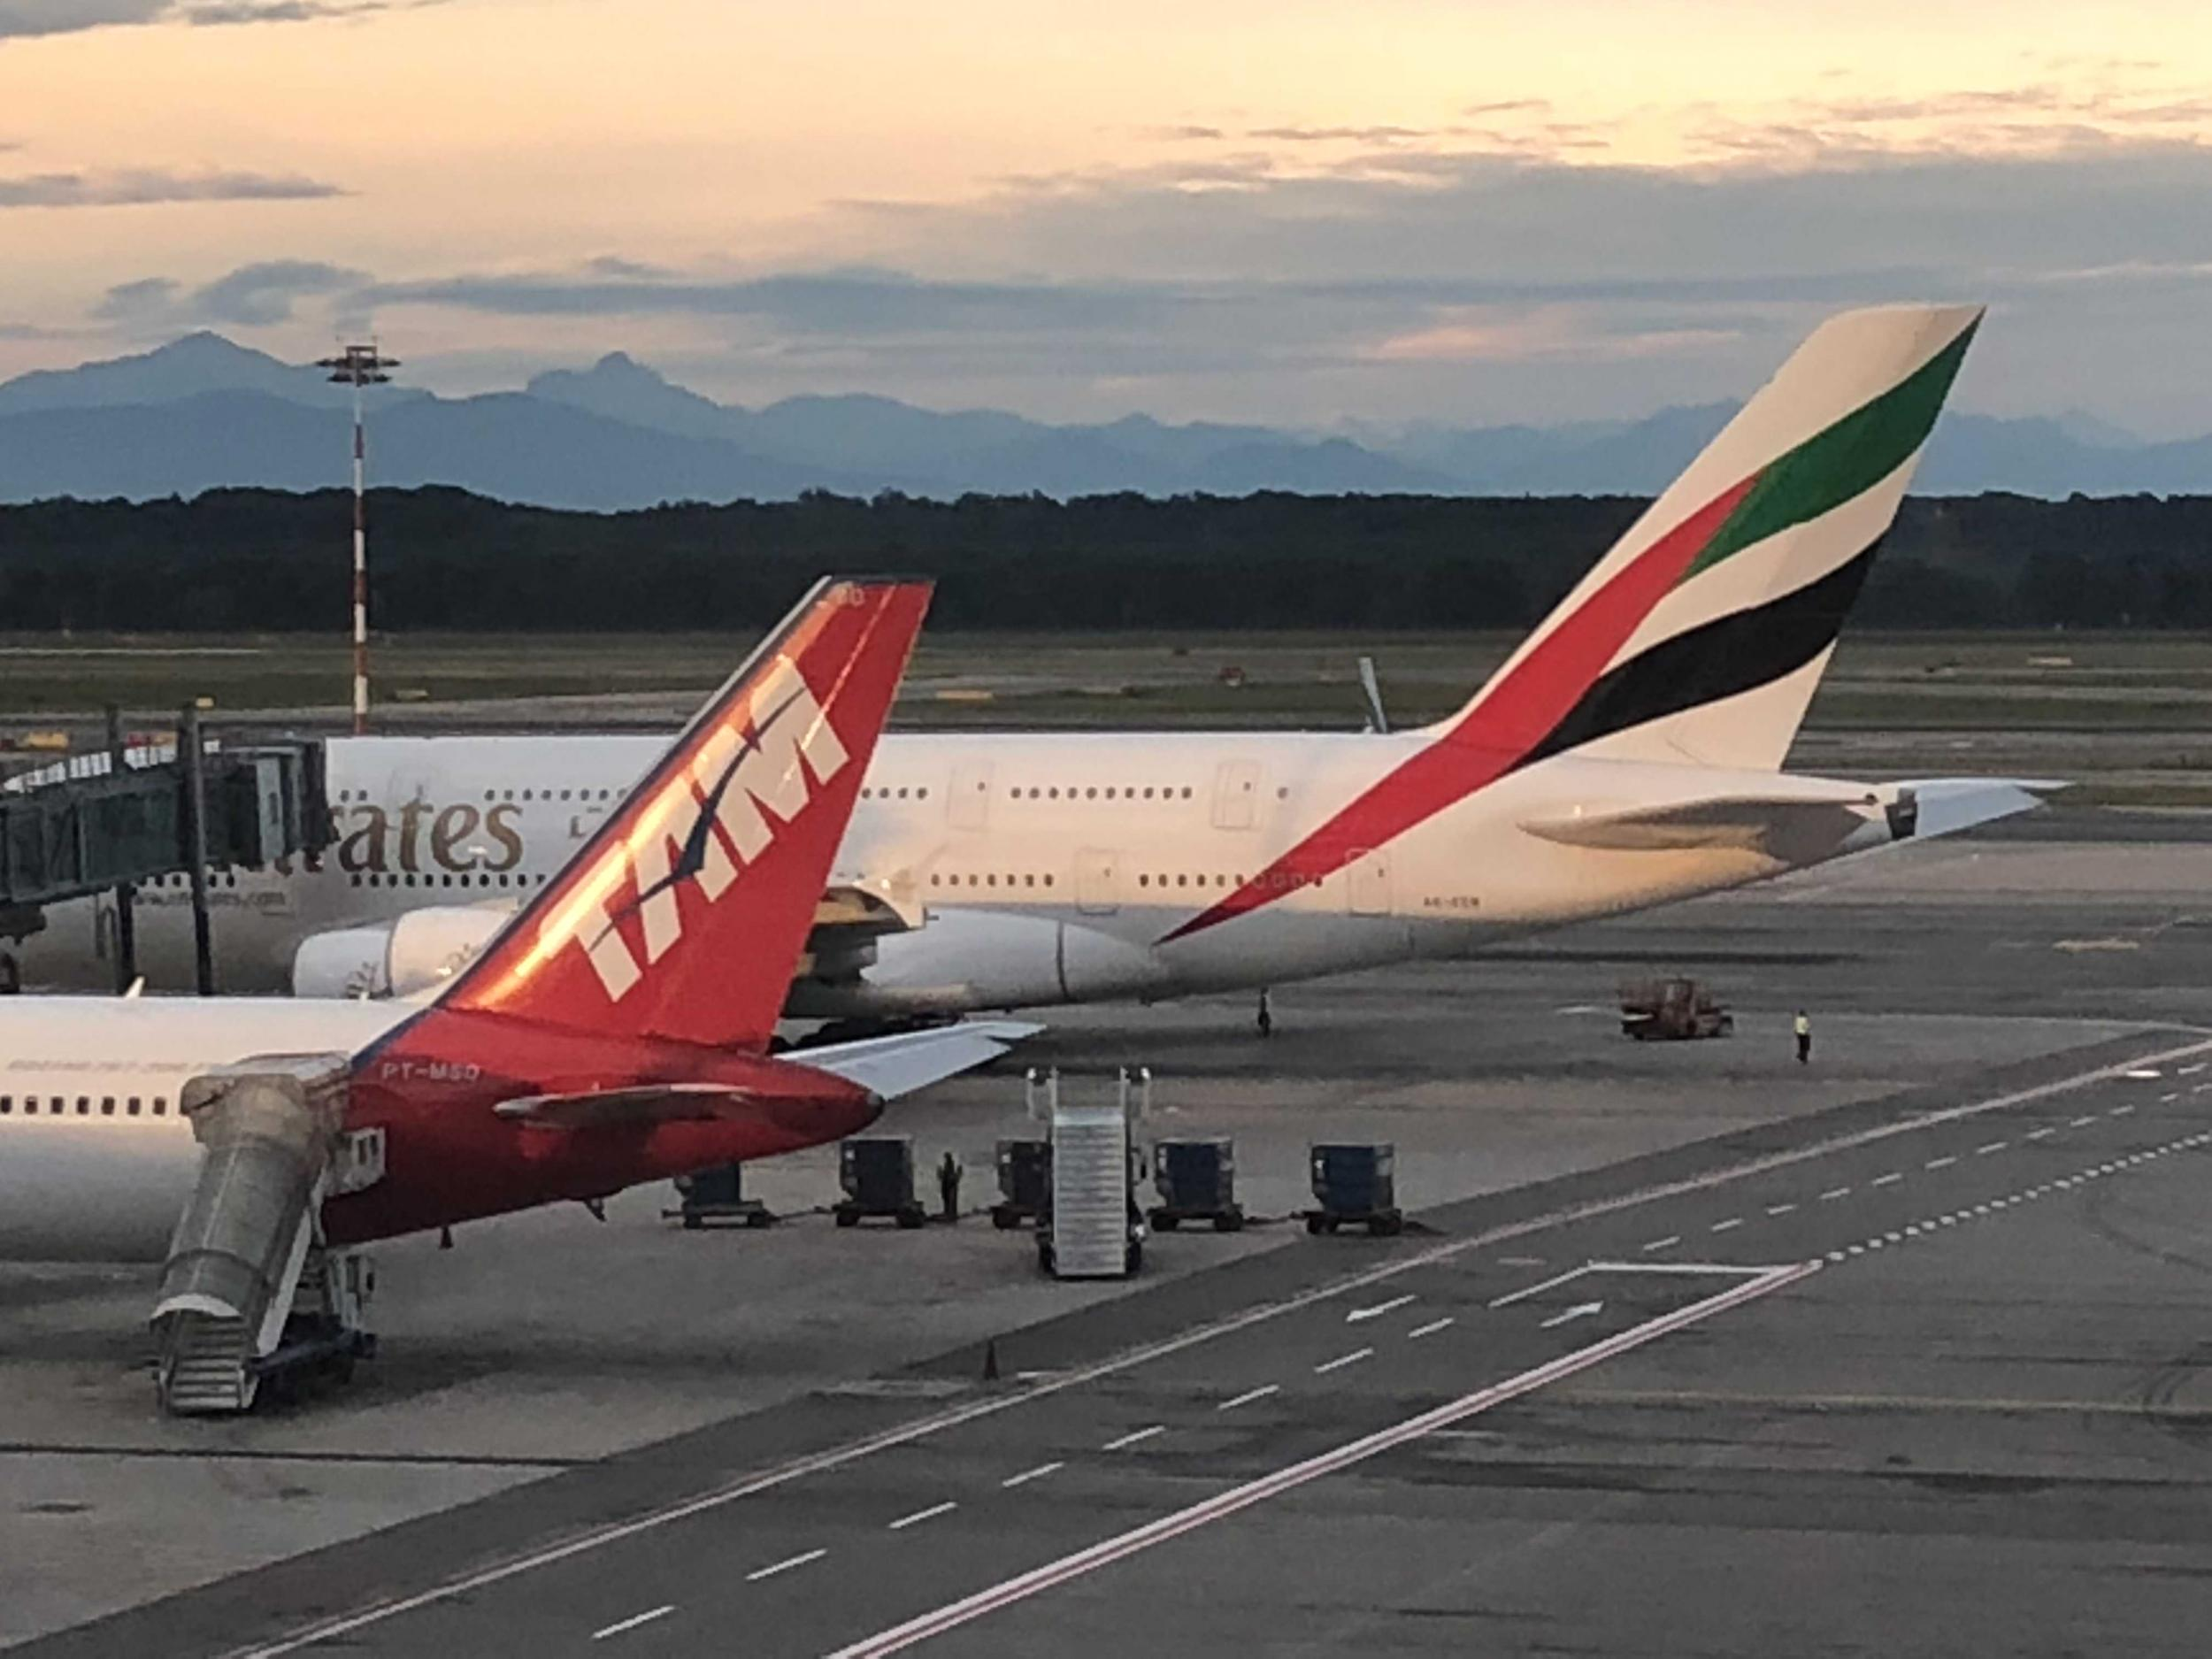 Italian airport strike to ground hundreds of flights on Tuesday